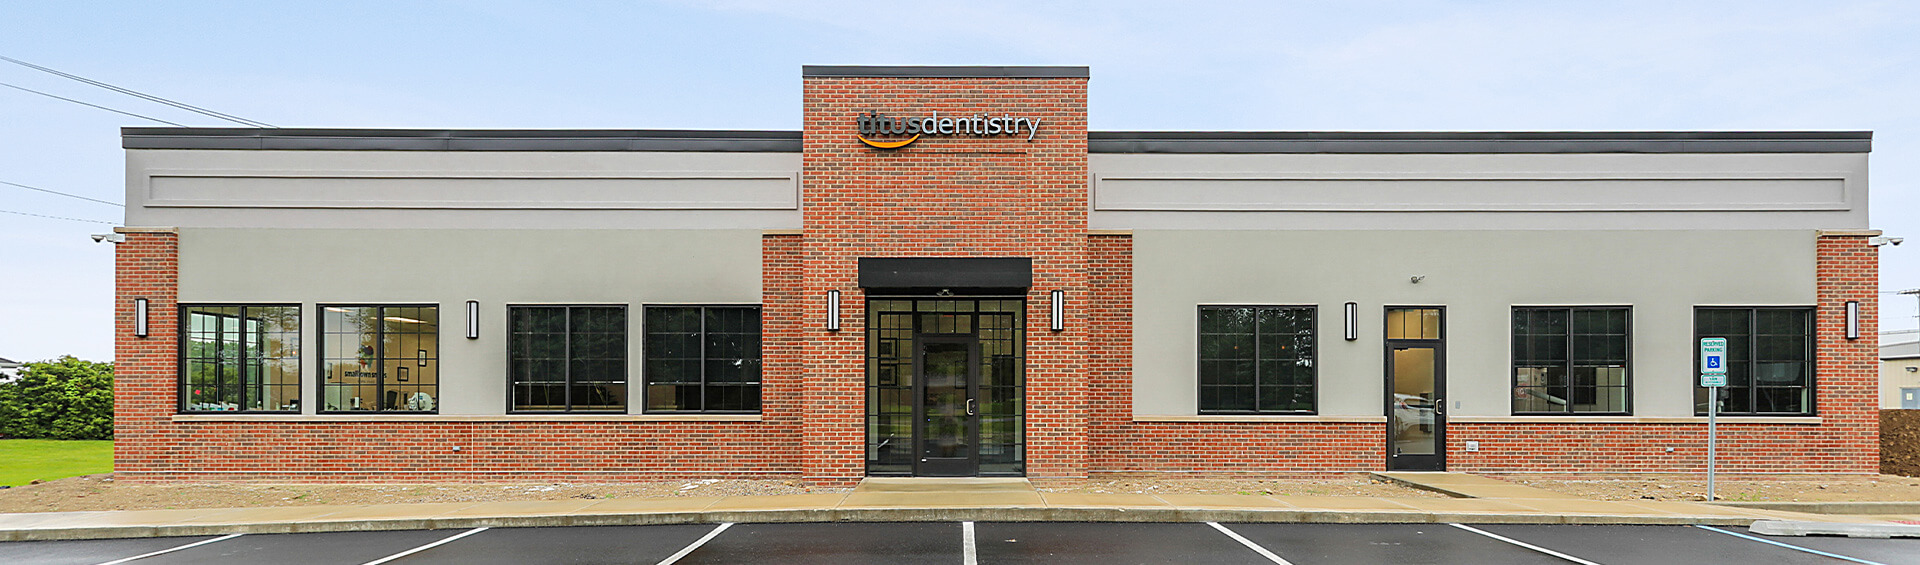 Our New Office - Titus Dentistry